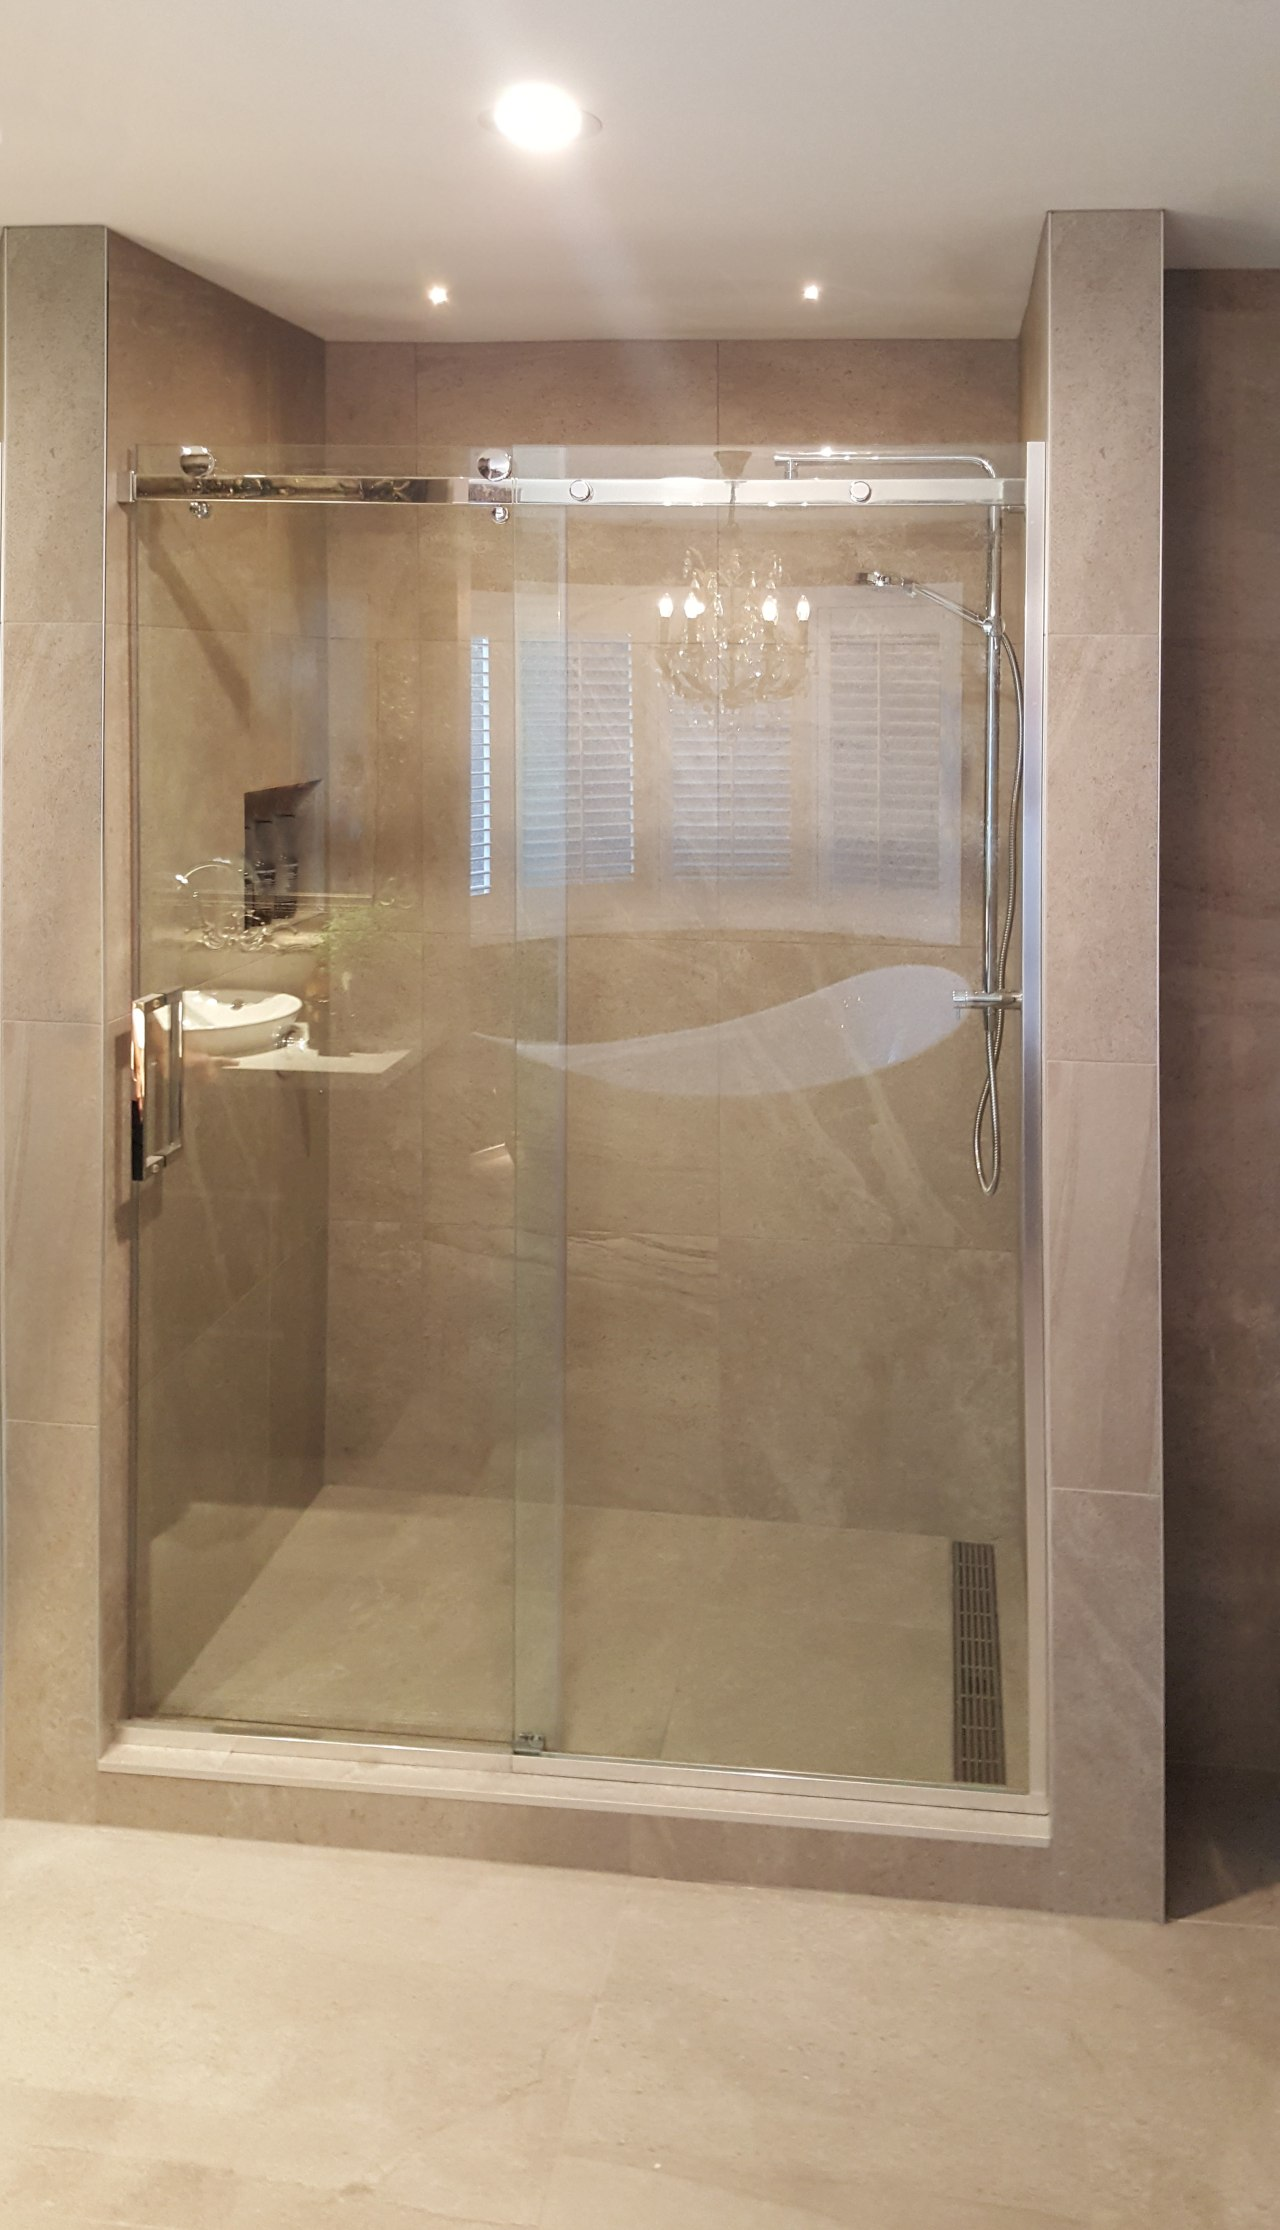 This bathroom by Five Star Bathrooms has many bathroom, plumbing fixture, shower, brown, gray